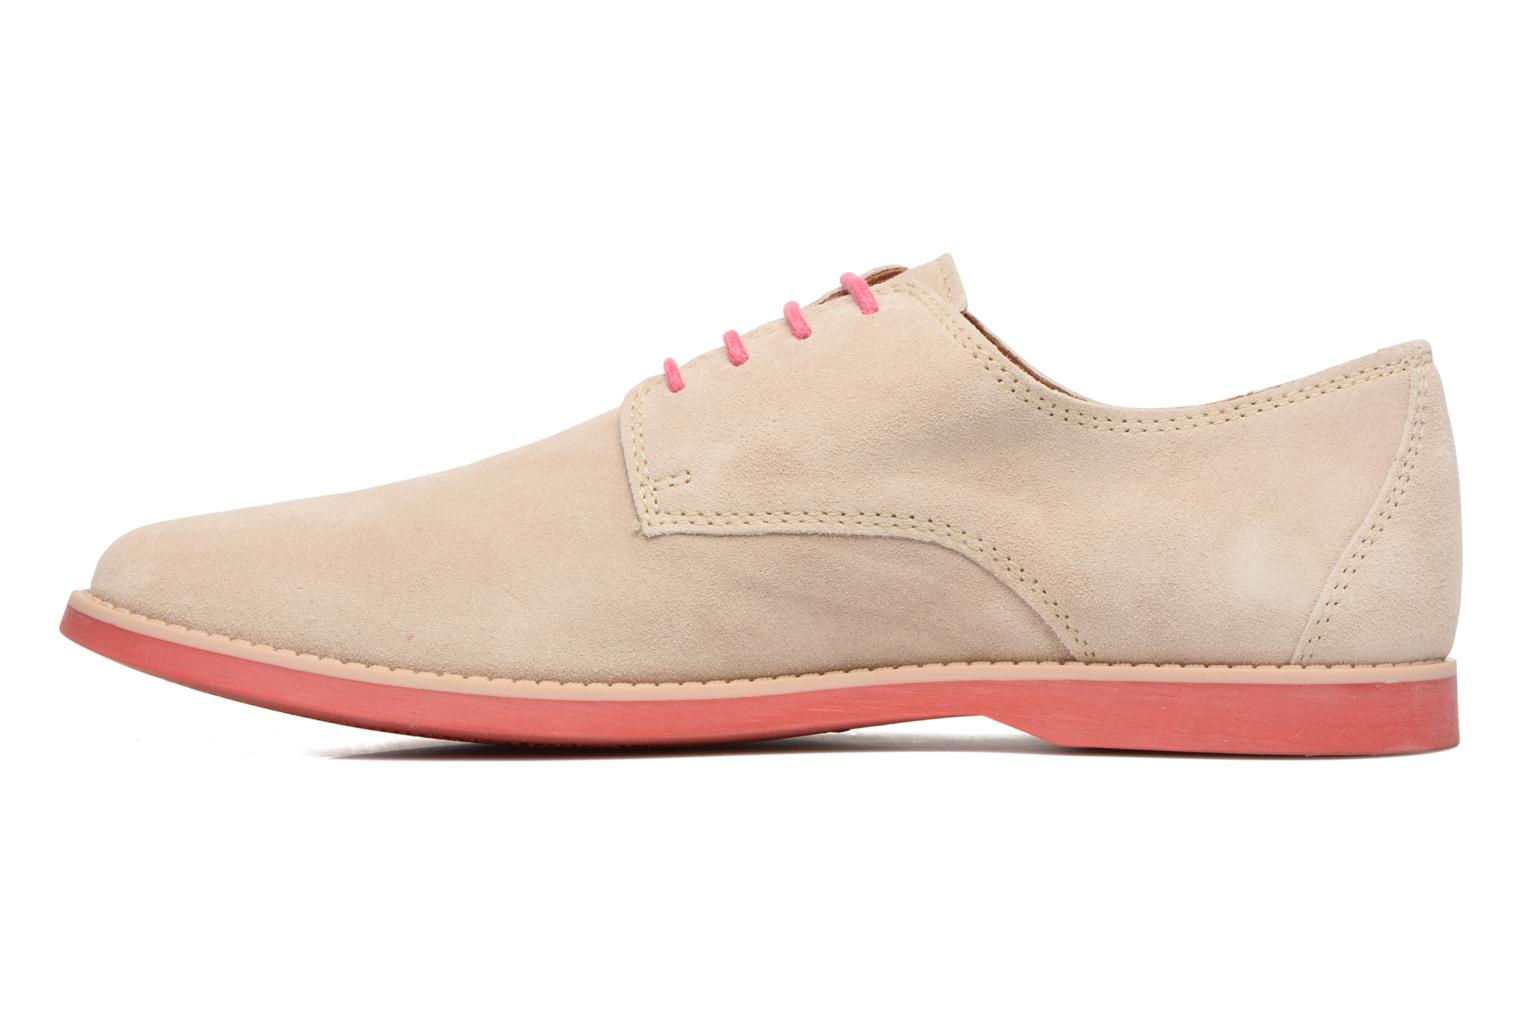 Chaussures à lacets Pataugas Hector H Beige vue face